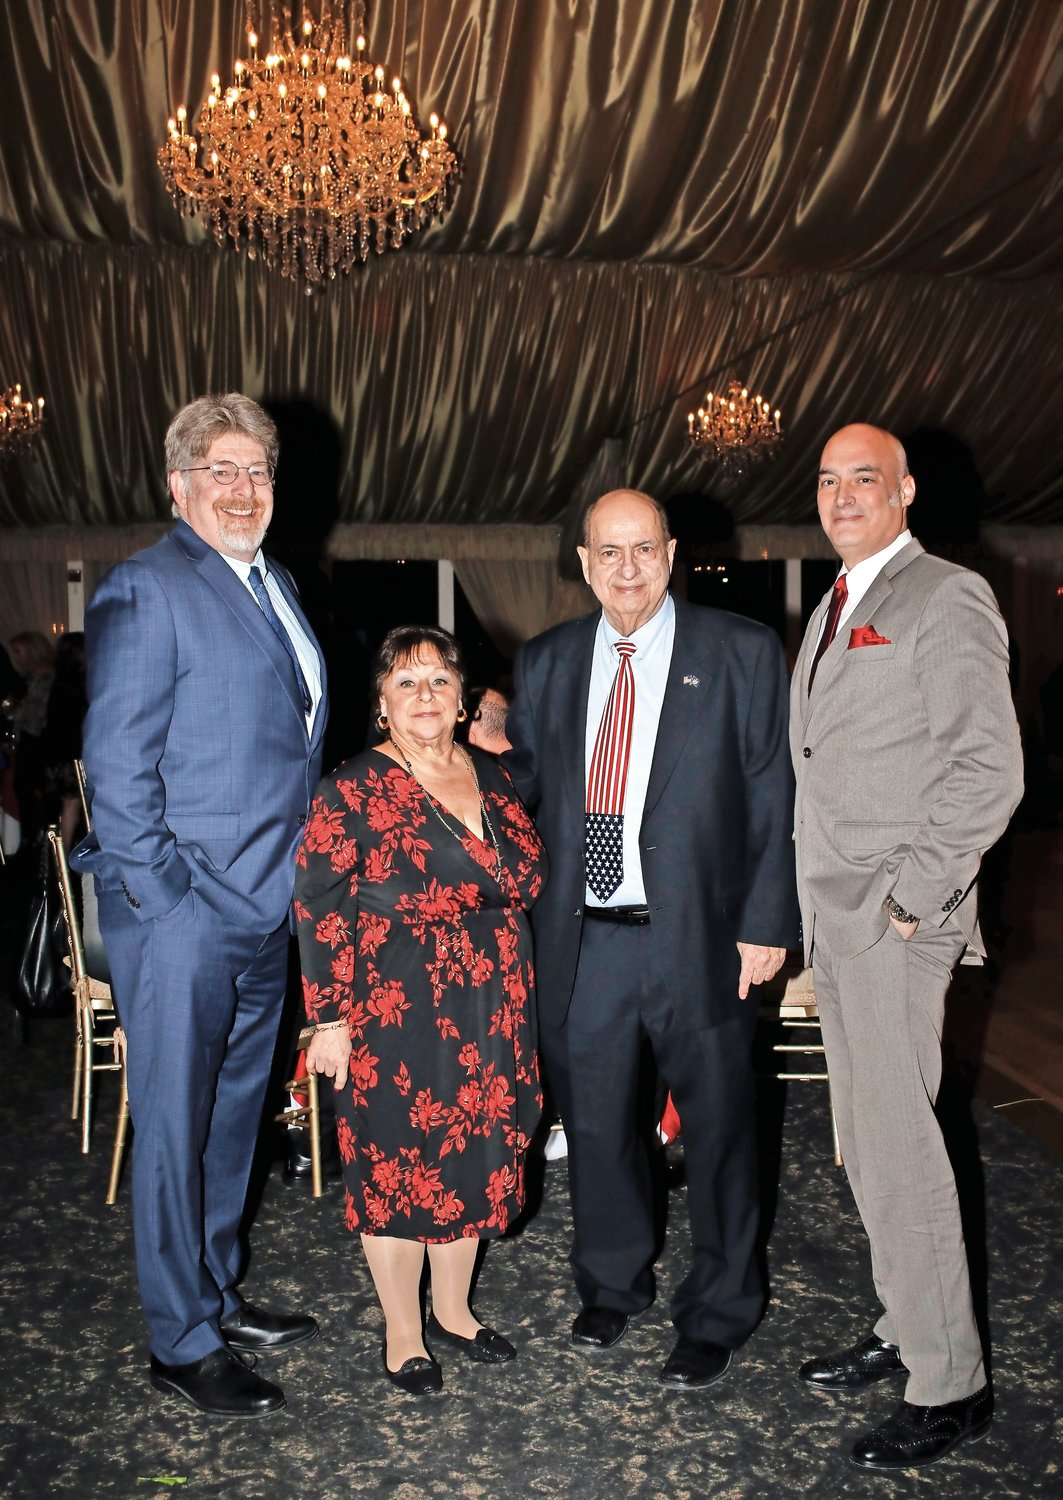 Island Park Chamber of Commerce members, from left, Mike Scully, Barbra Rubin-Perry, Joe Pontecorvo and Glenn Ingolia attended the event.